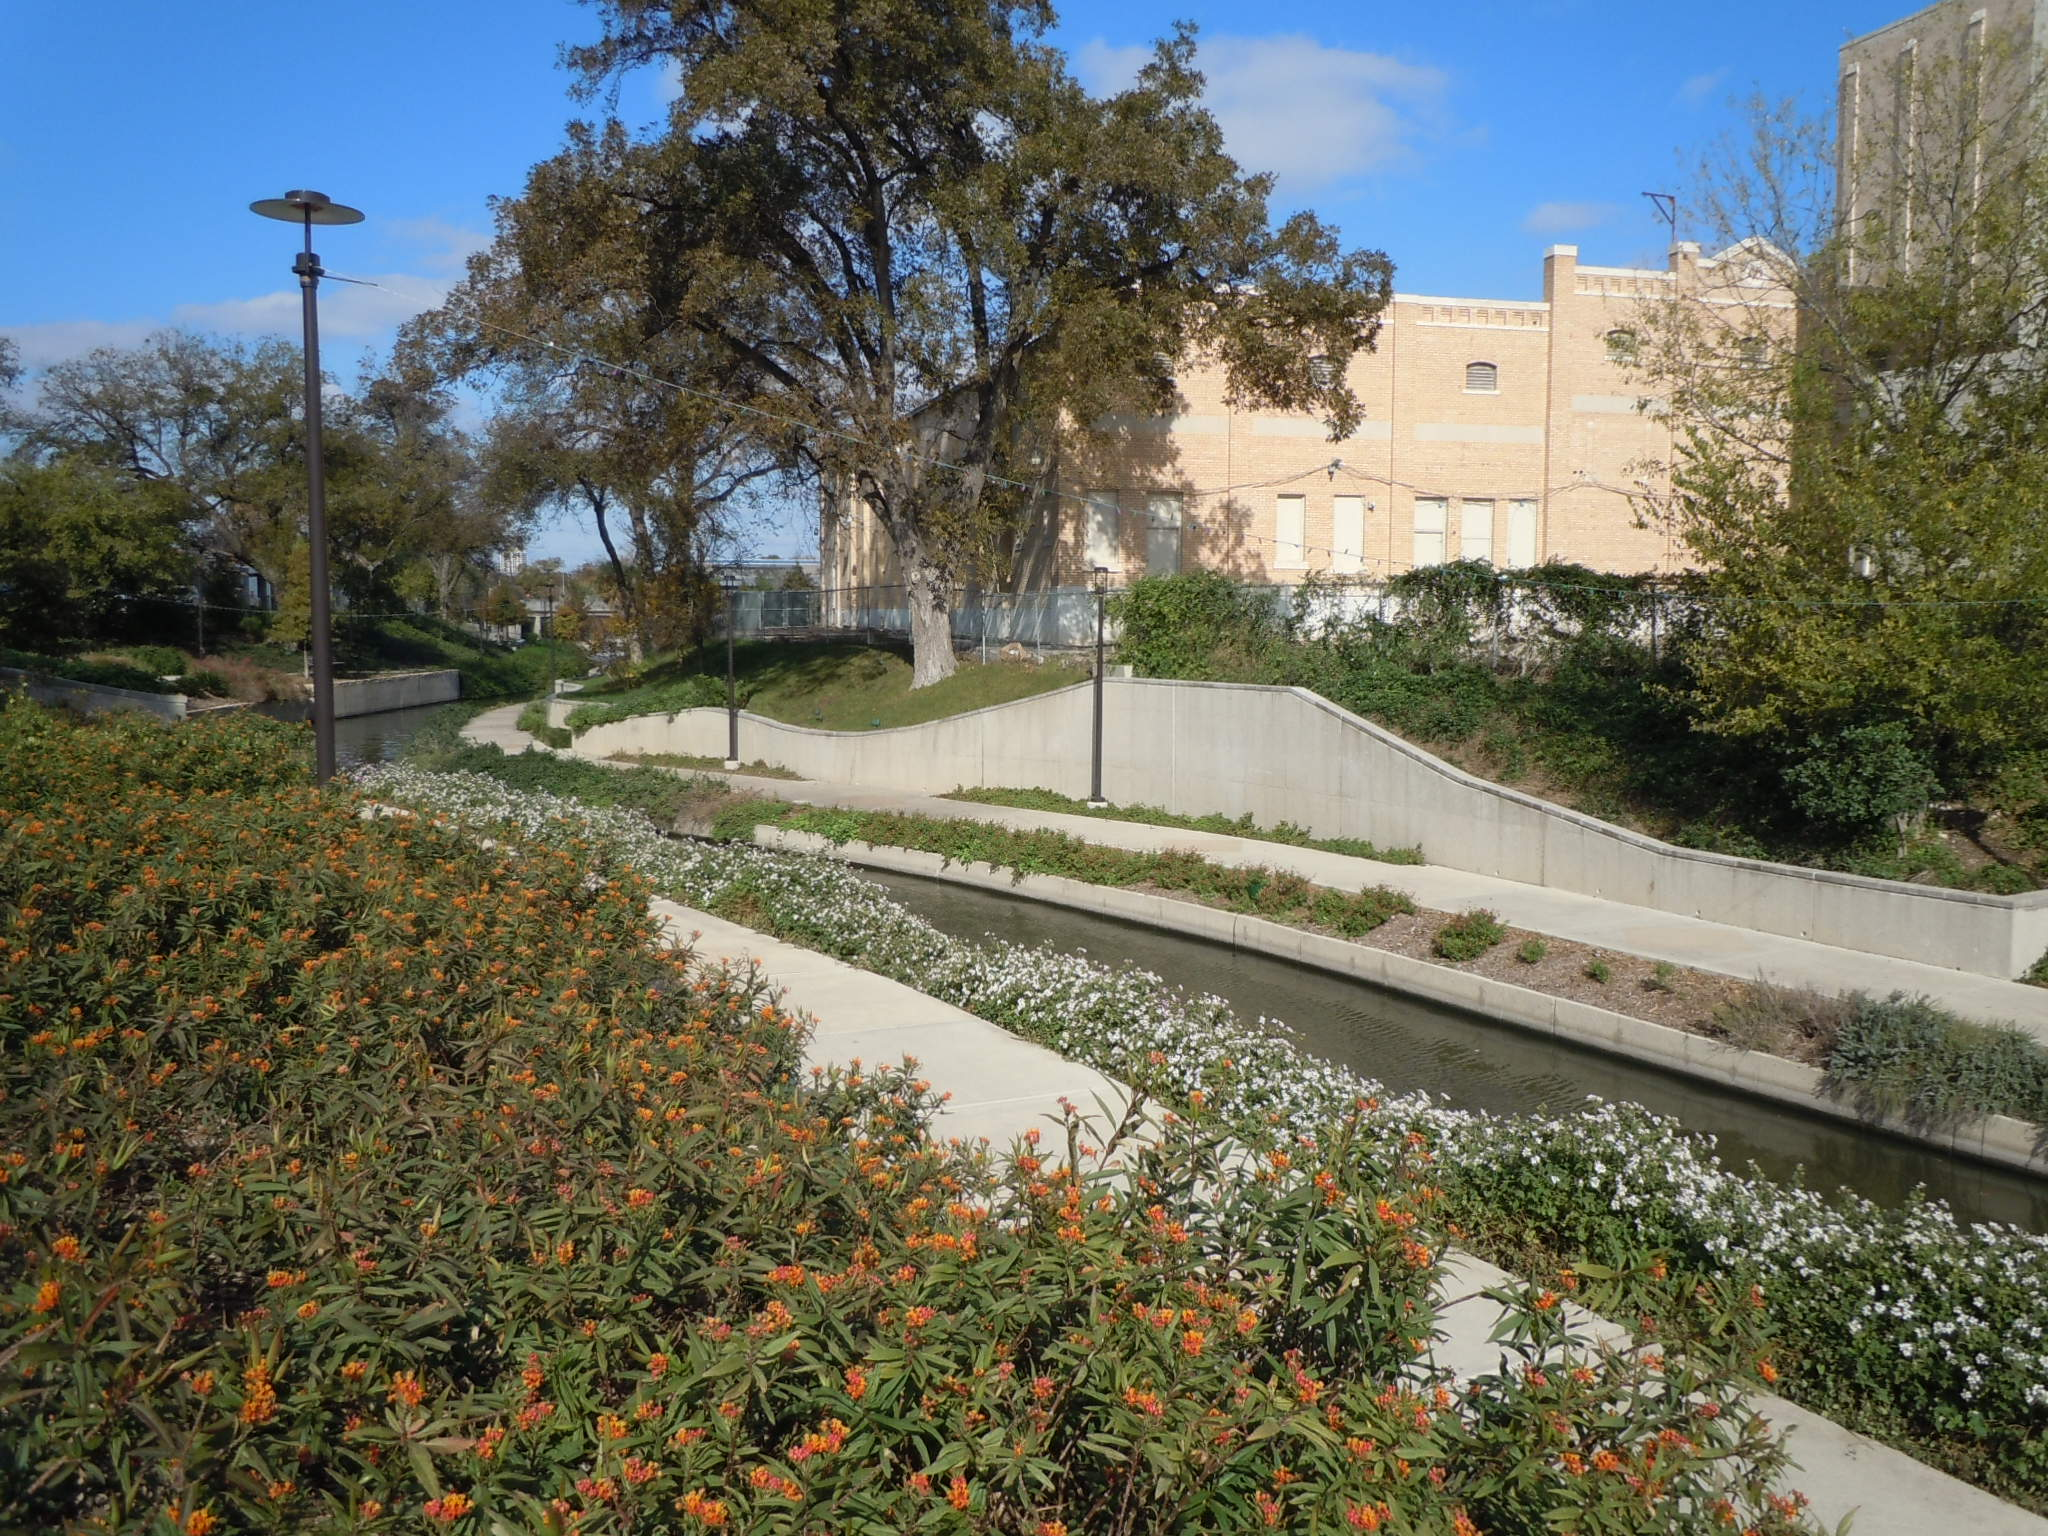 The Museum Reach Milkweed Patch on the San Antonio Riverwalk